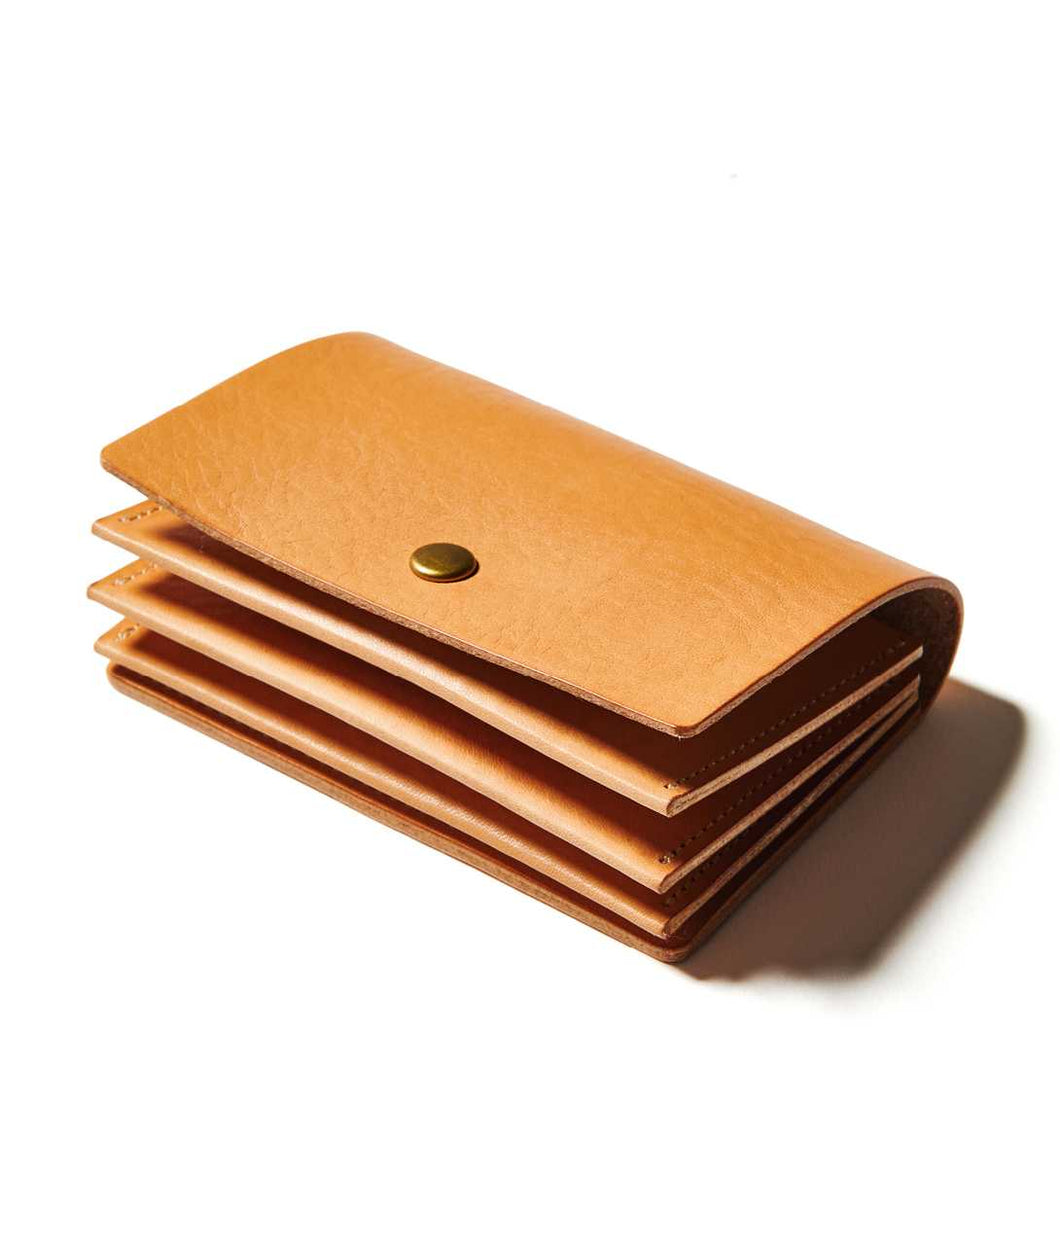 〈LIM DESIGN〉Card Case / カードケース (NATURAL)